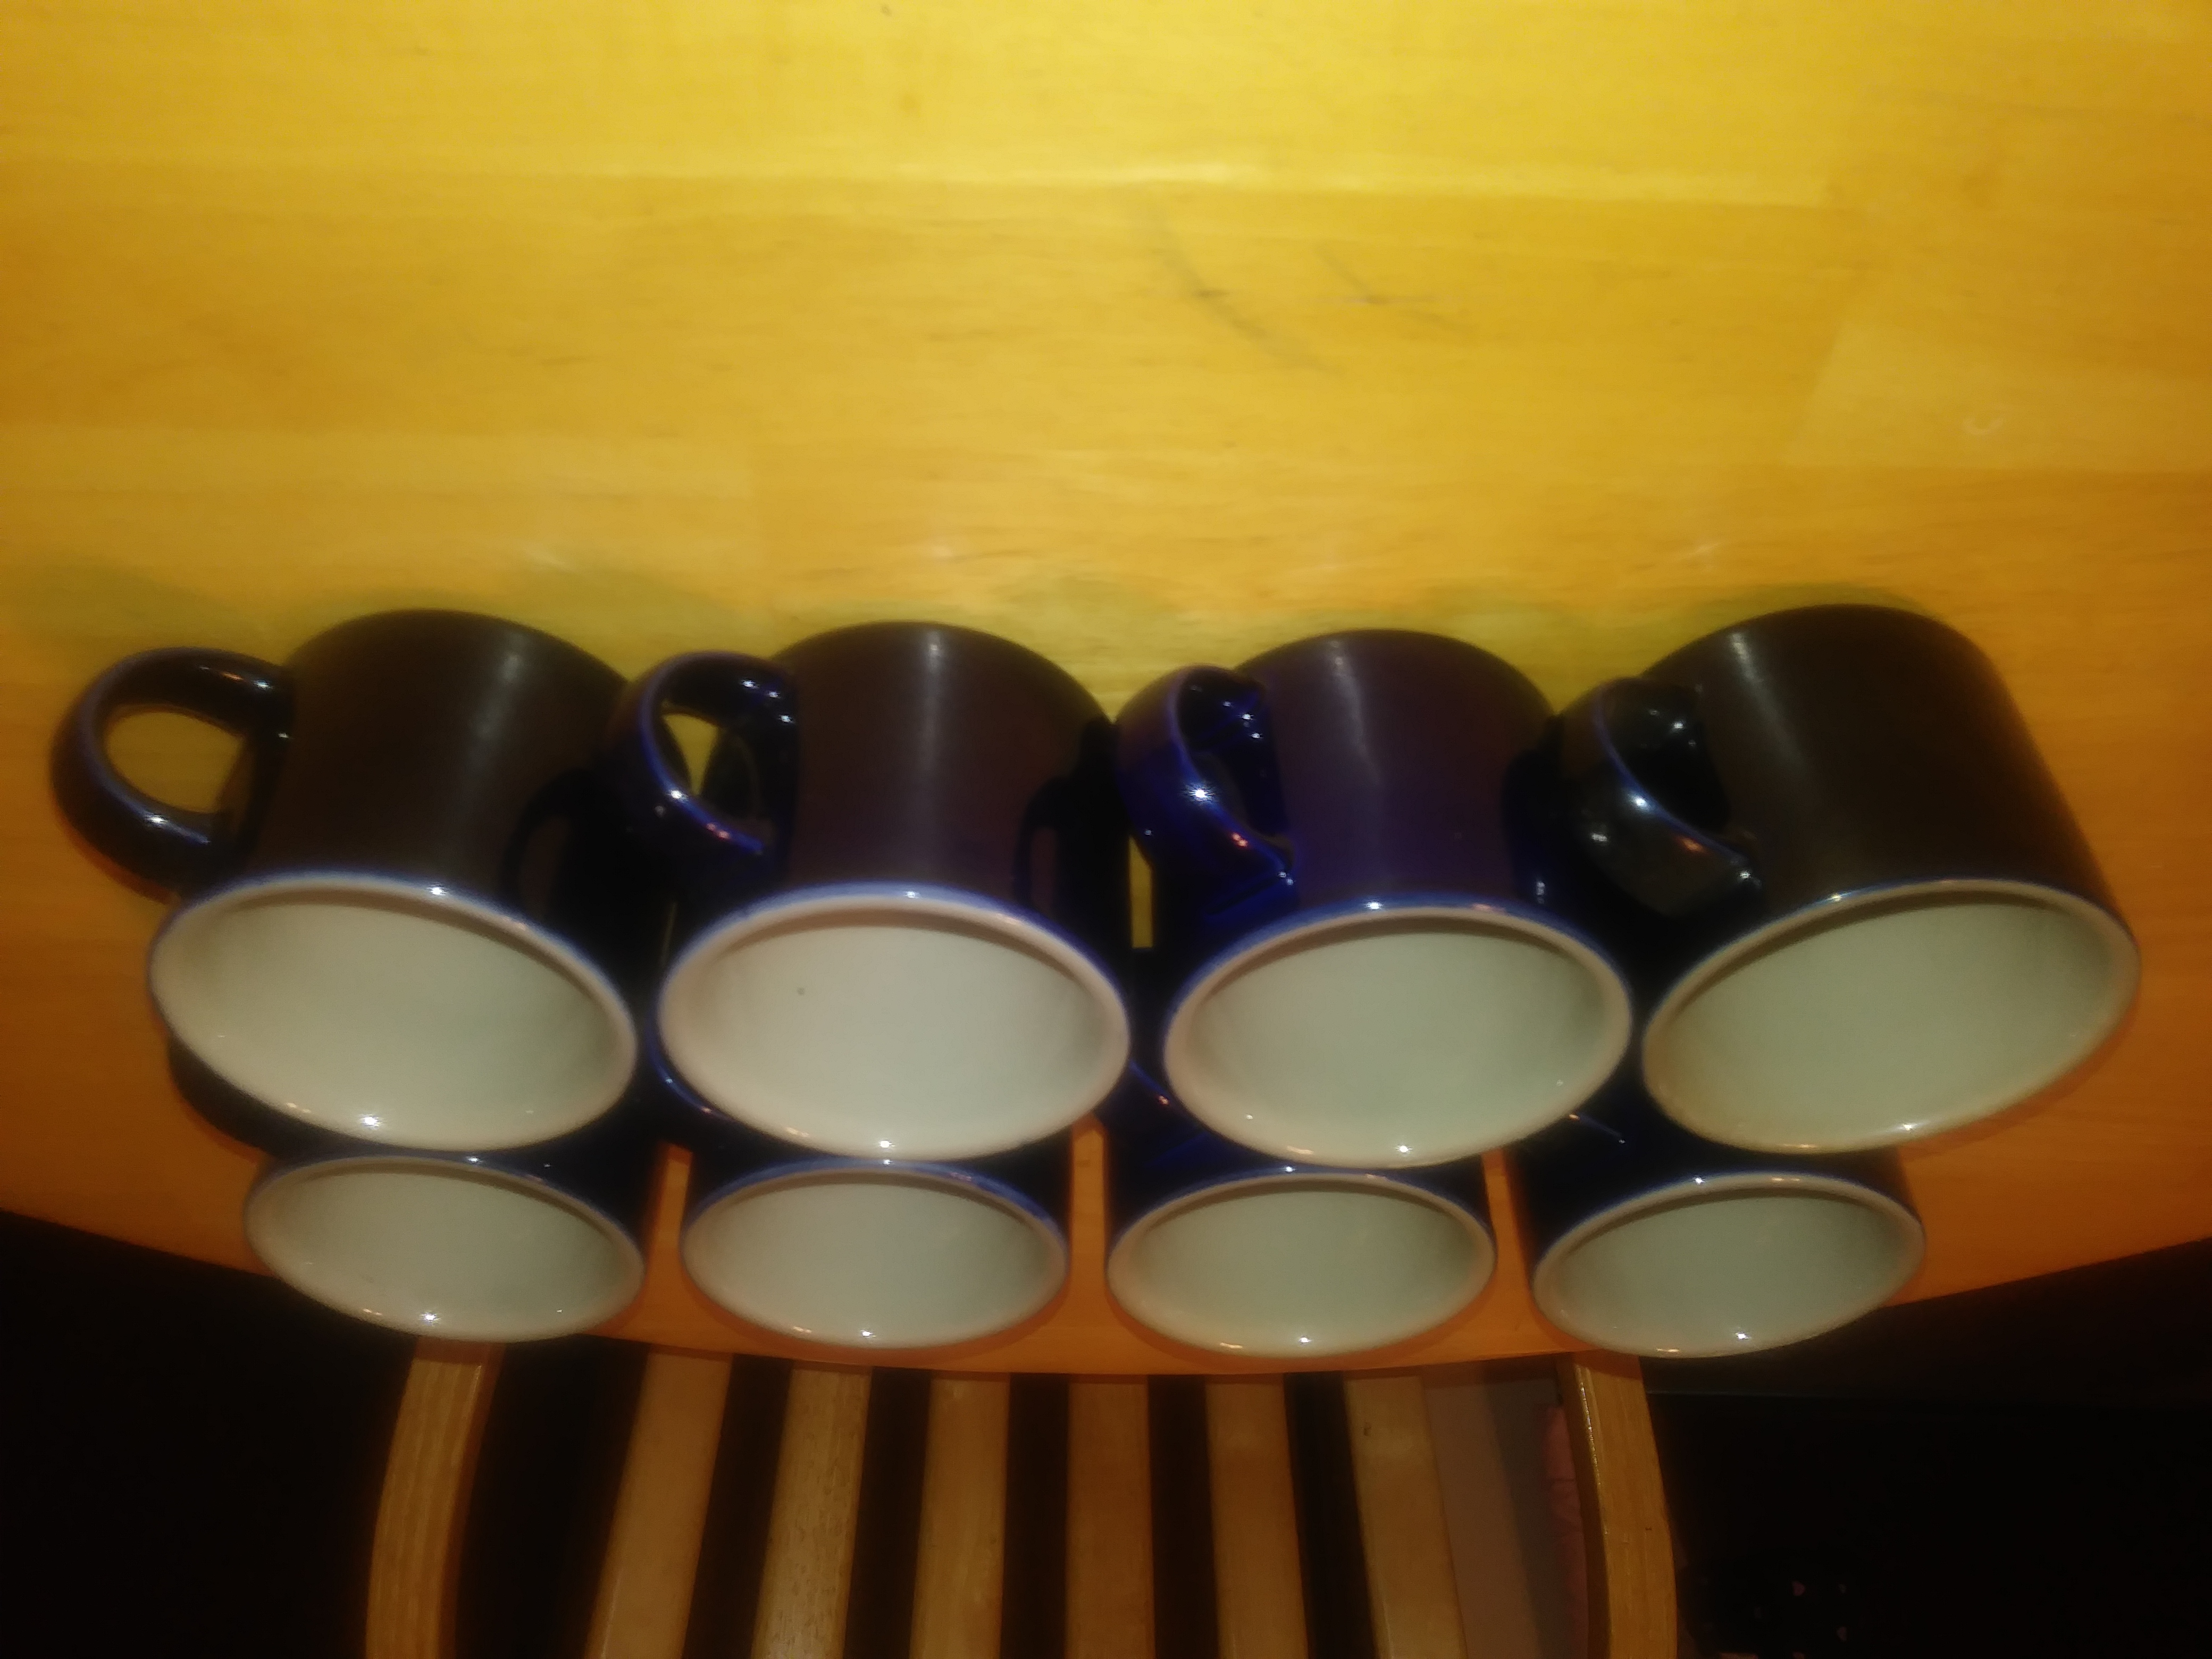 Set of 8 coffee cups